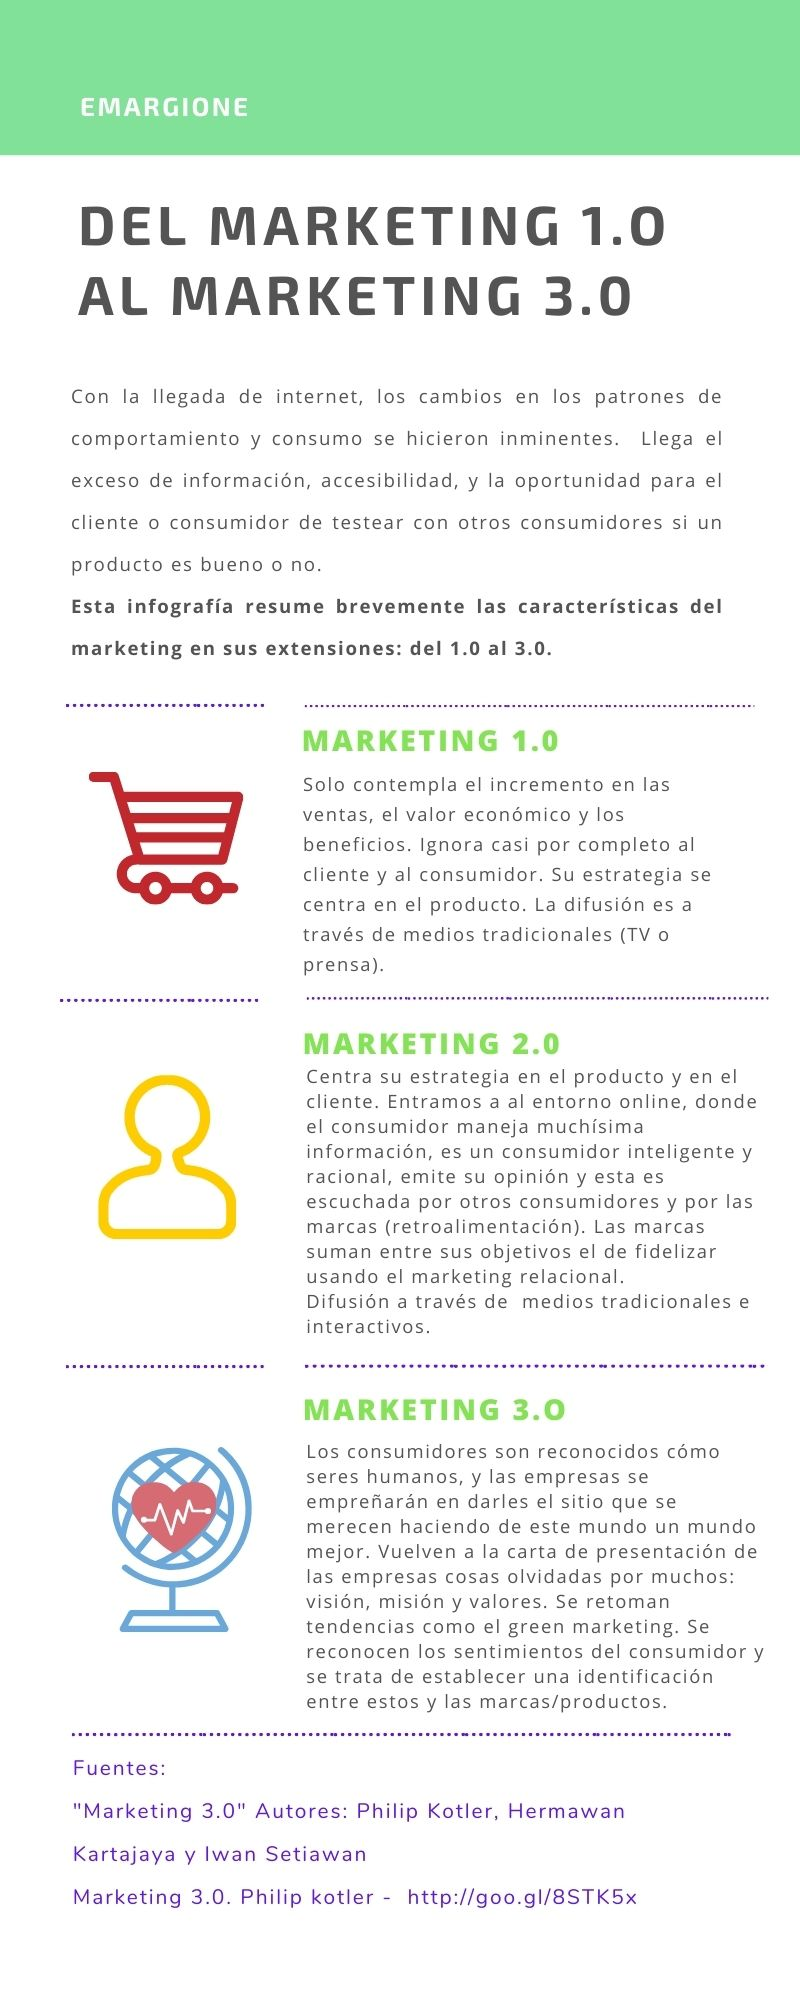 emargione_blog de marketing digital_infografia que compara al marketing 1.0, 2.0 y 3.0